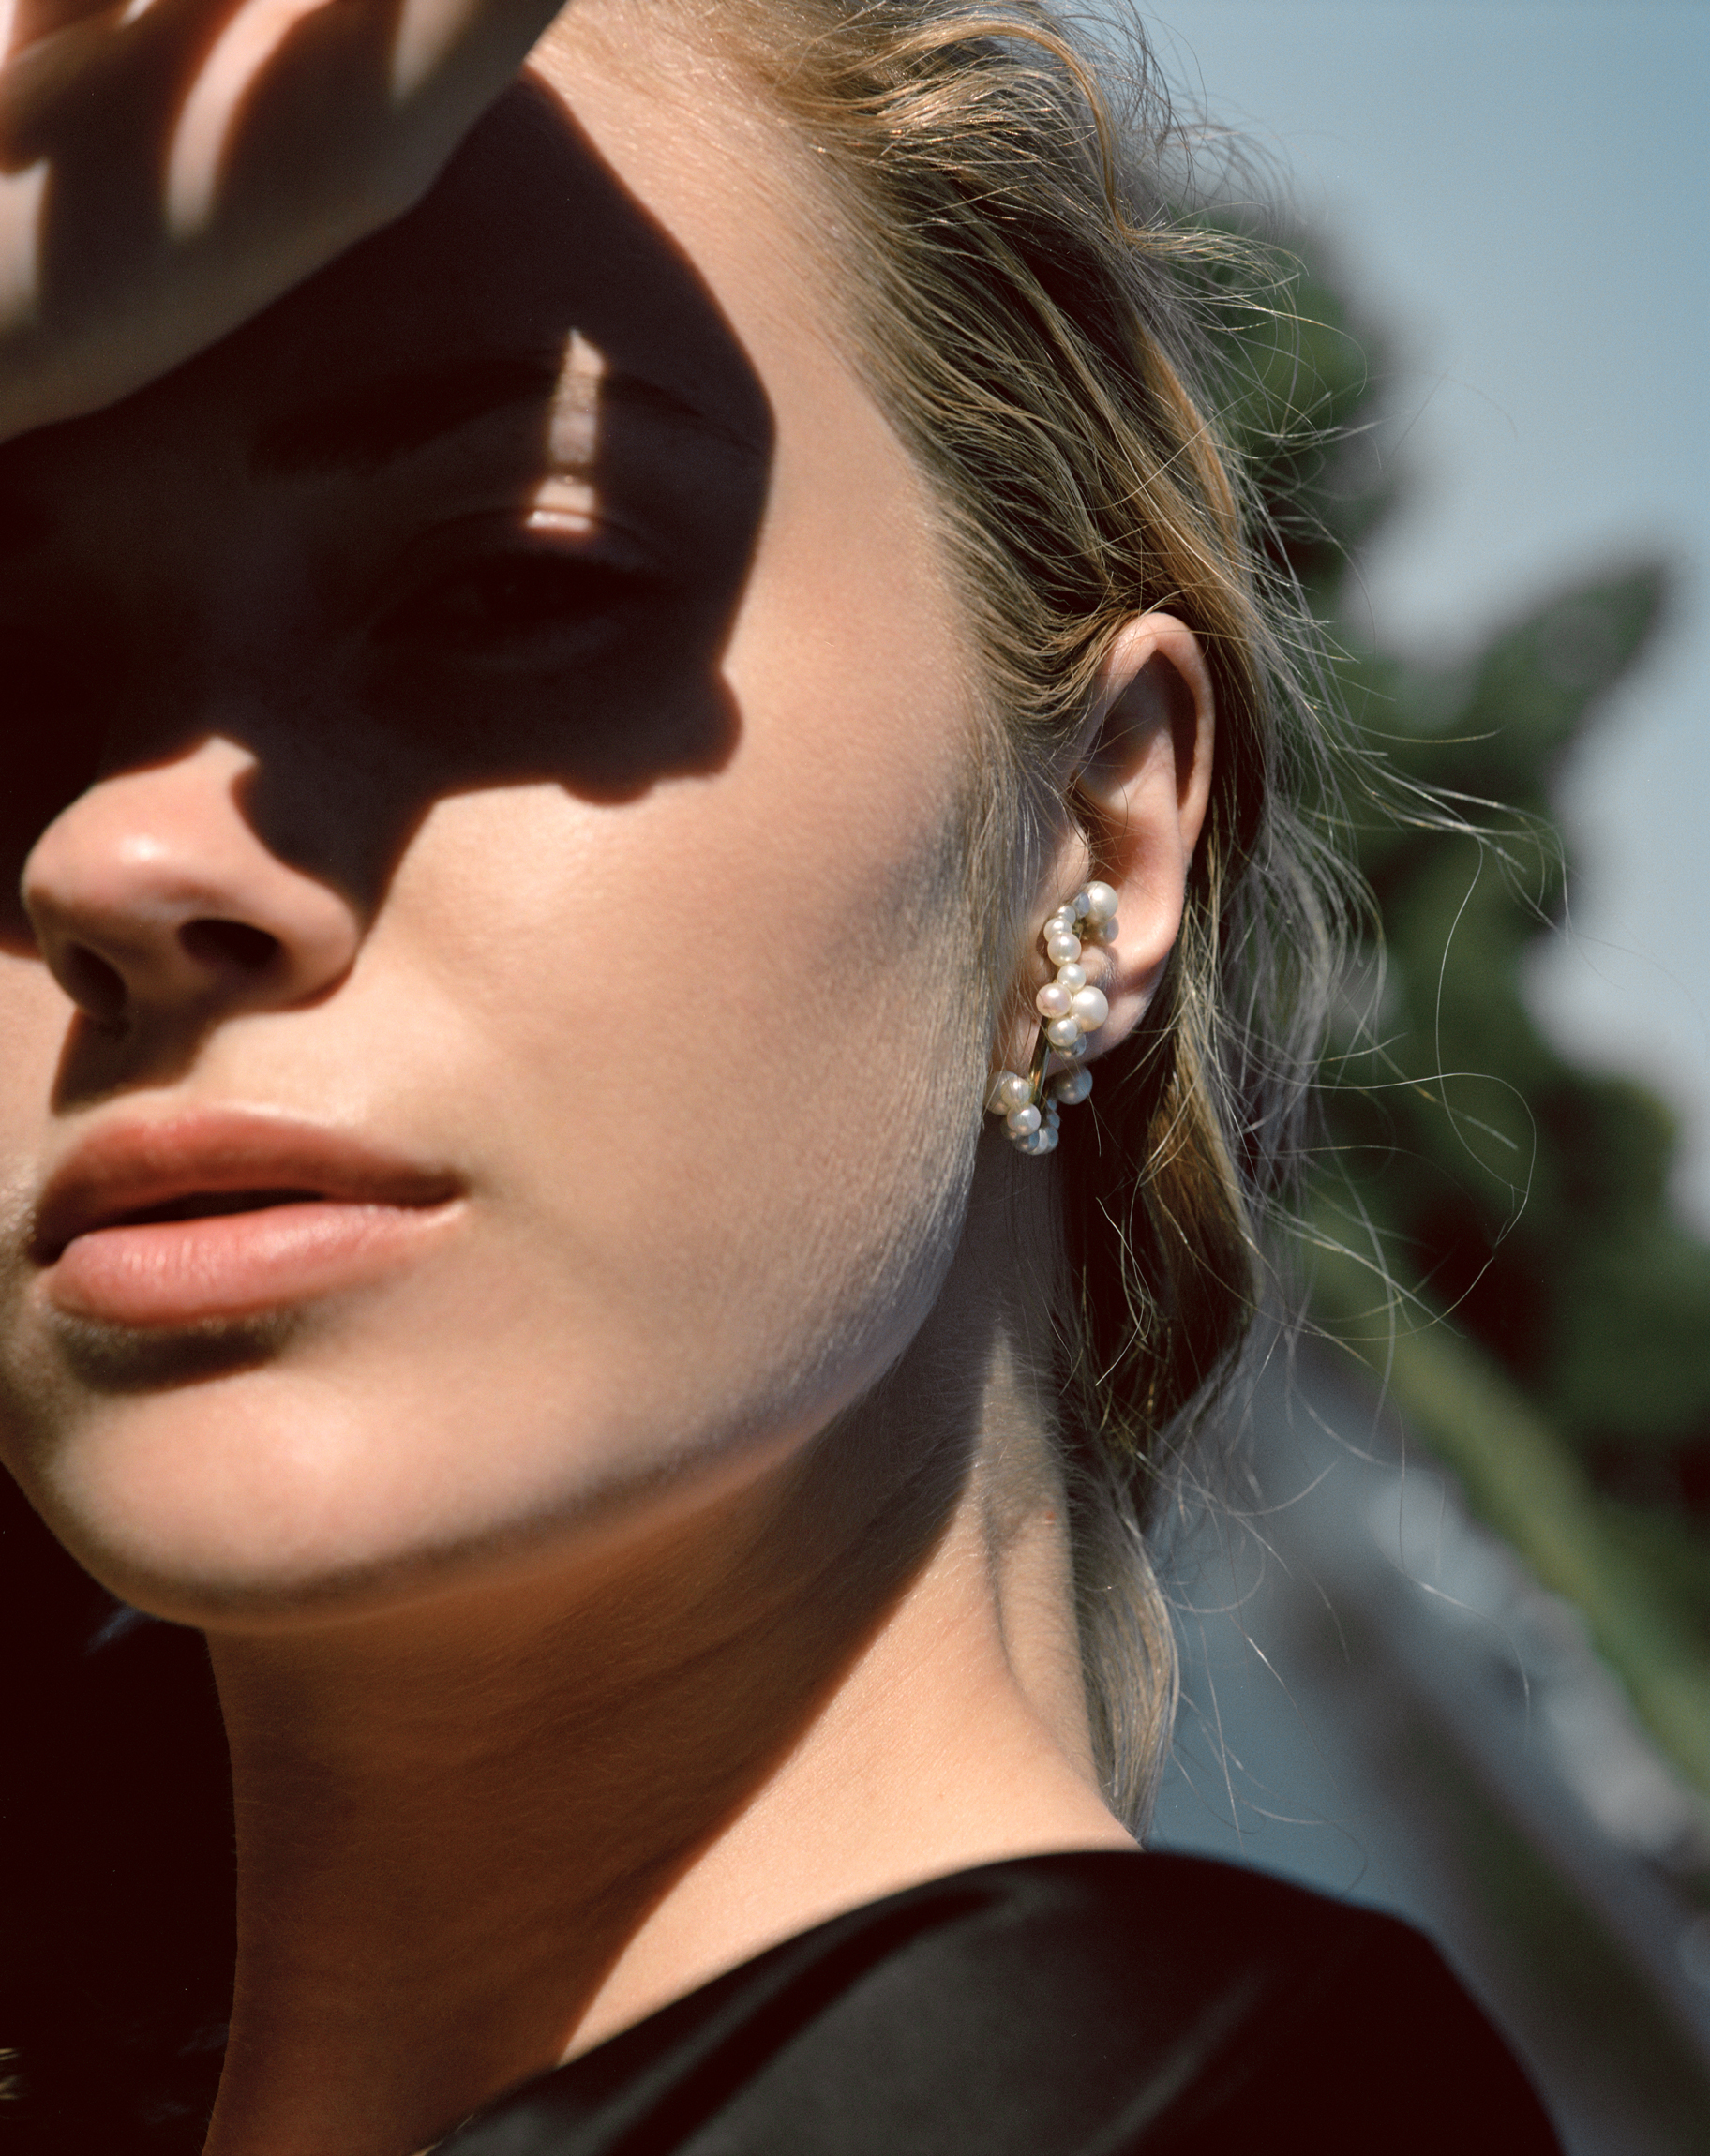 Gale Warning vermeil and pearl ear cuff - £325   More details